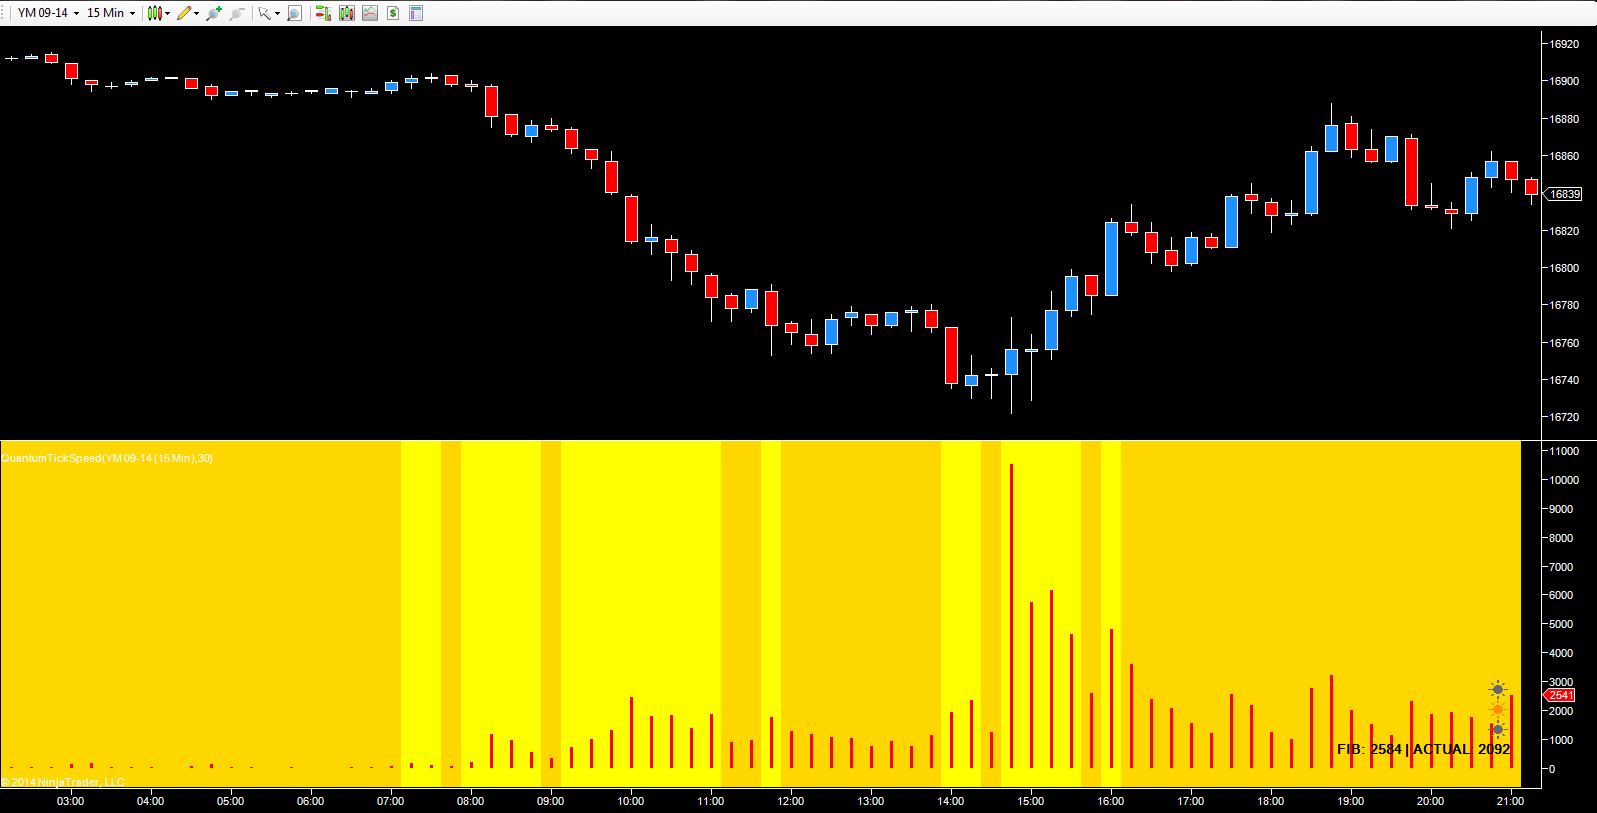 YM E-mini September futures - 15 minute chart